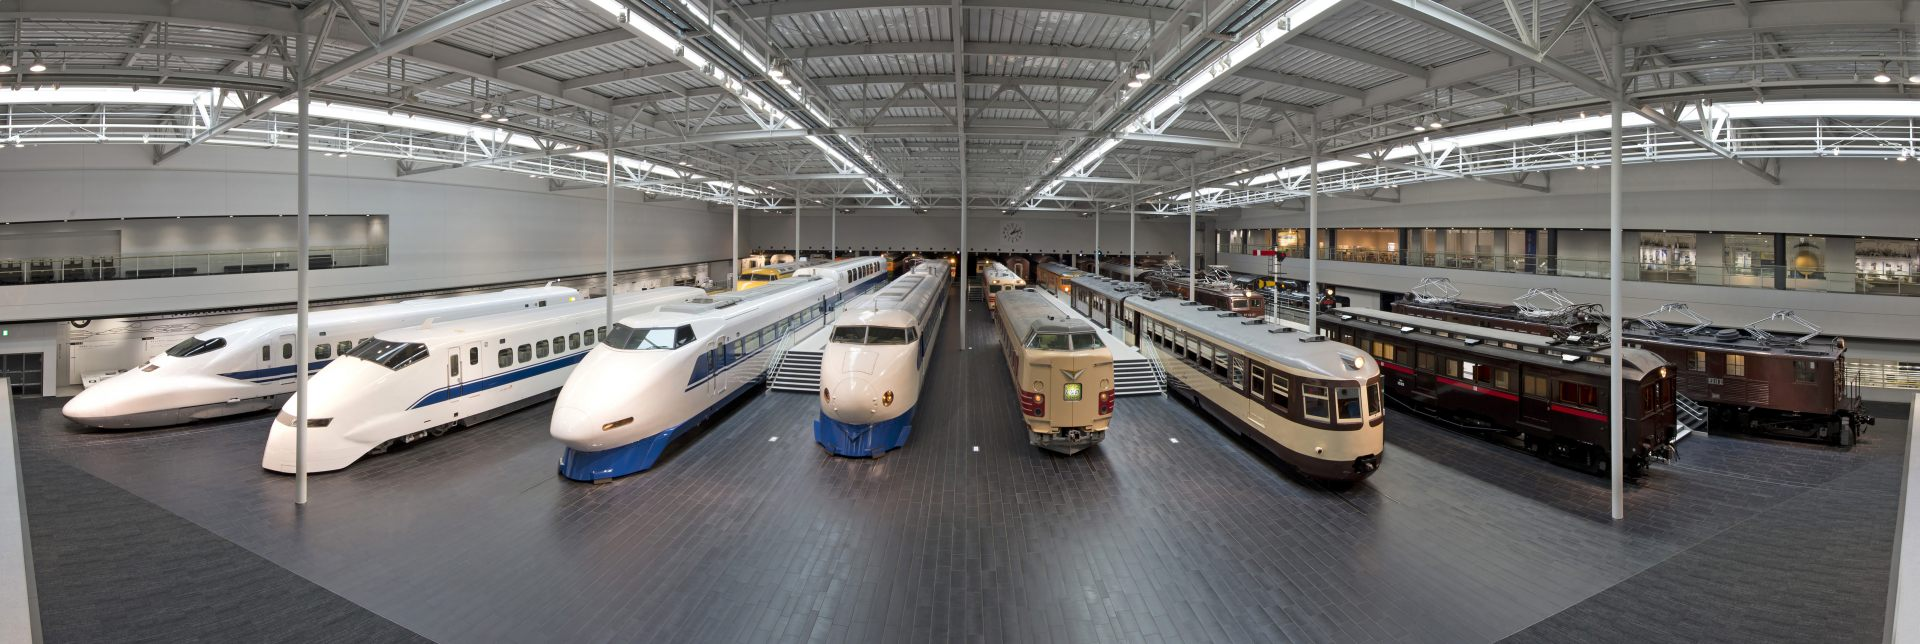 The highlight is seeing the rolling stock all lined up! / Photo credit: SCMAGLEV and Railway Park